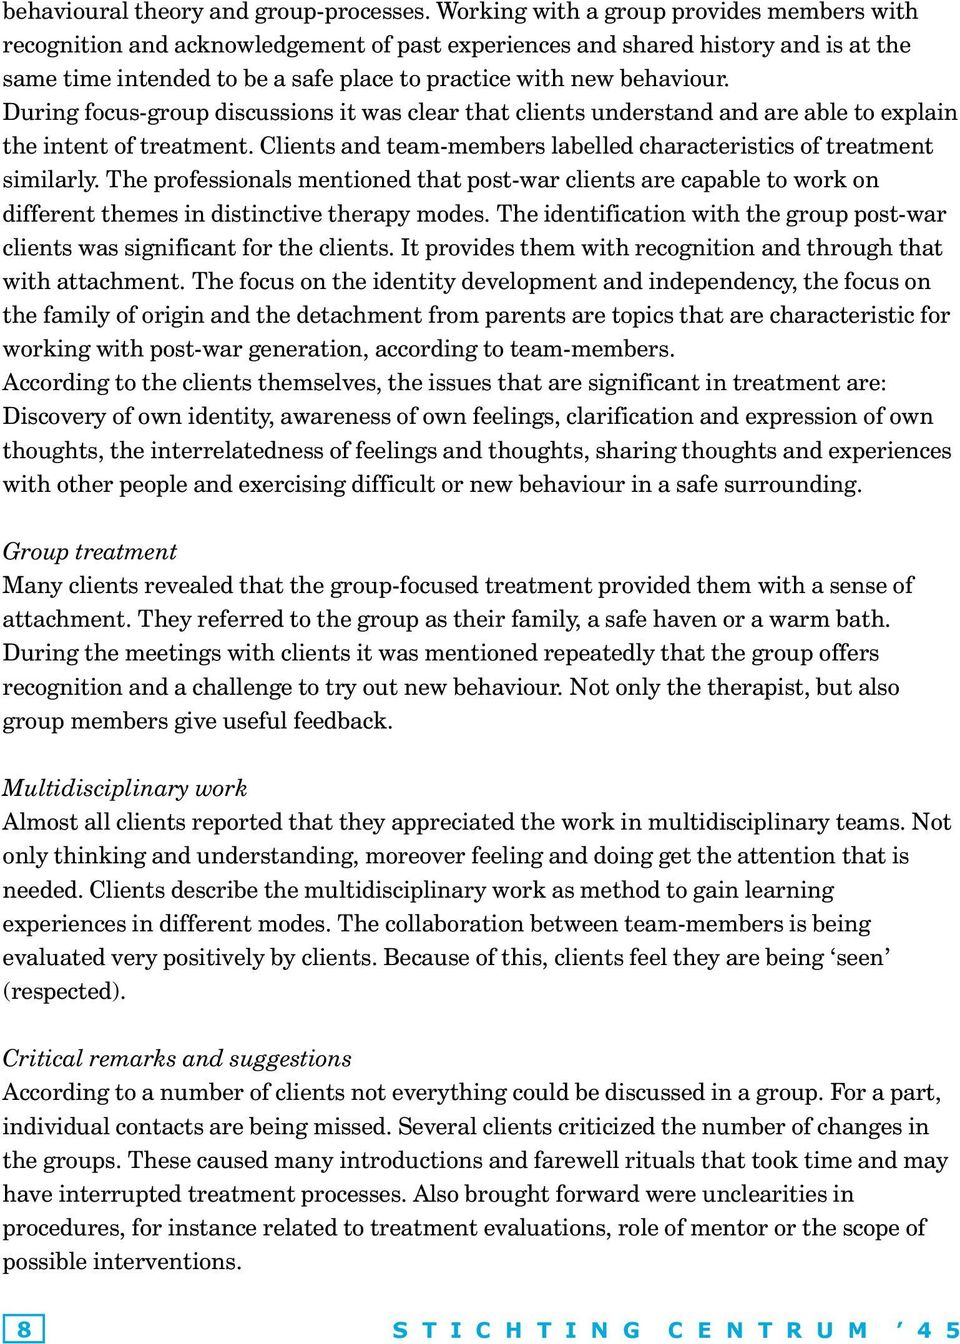 During focus-group discussions it was clear that clients understand and are able to explain the intent of treatment. Clients and team-members labelled characteristics of treatment similarly.